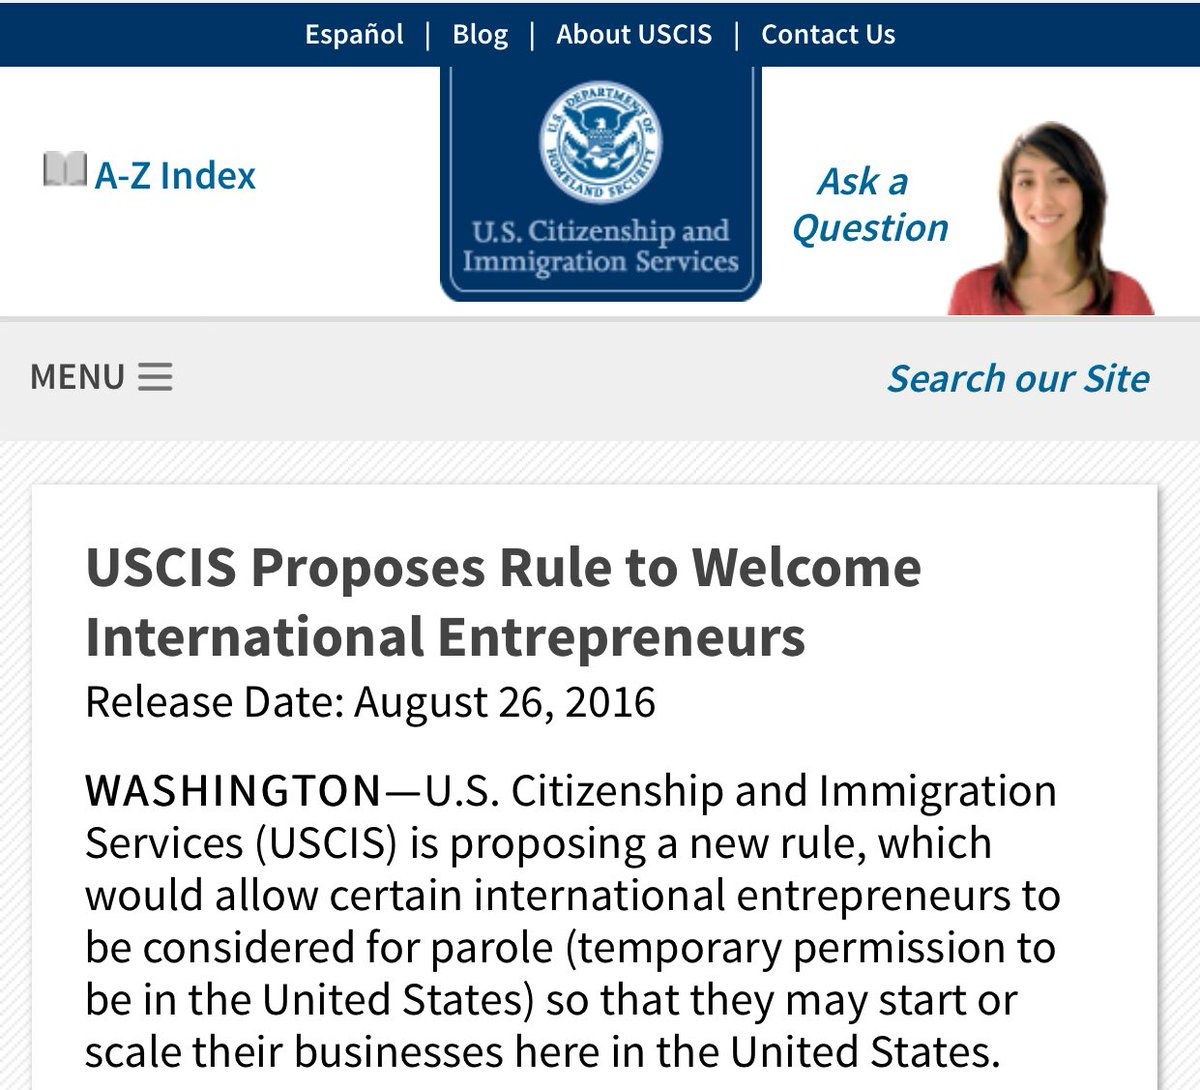 After years of discussion and advocacy from many, USCIS just proposed a startup visa: https://t.co/I6dDu7YtZo https://t.co/E0UF3eYJKO